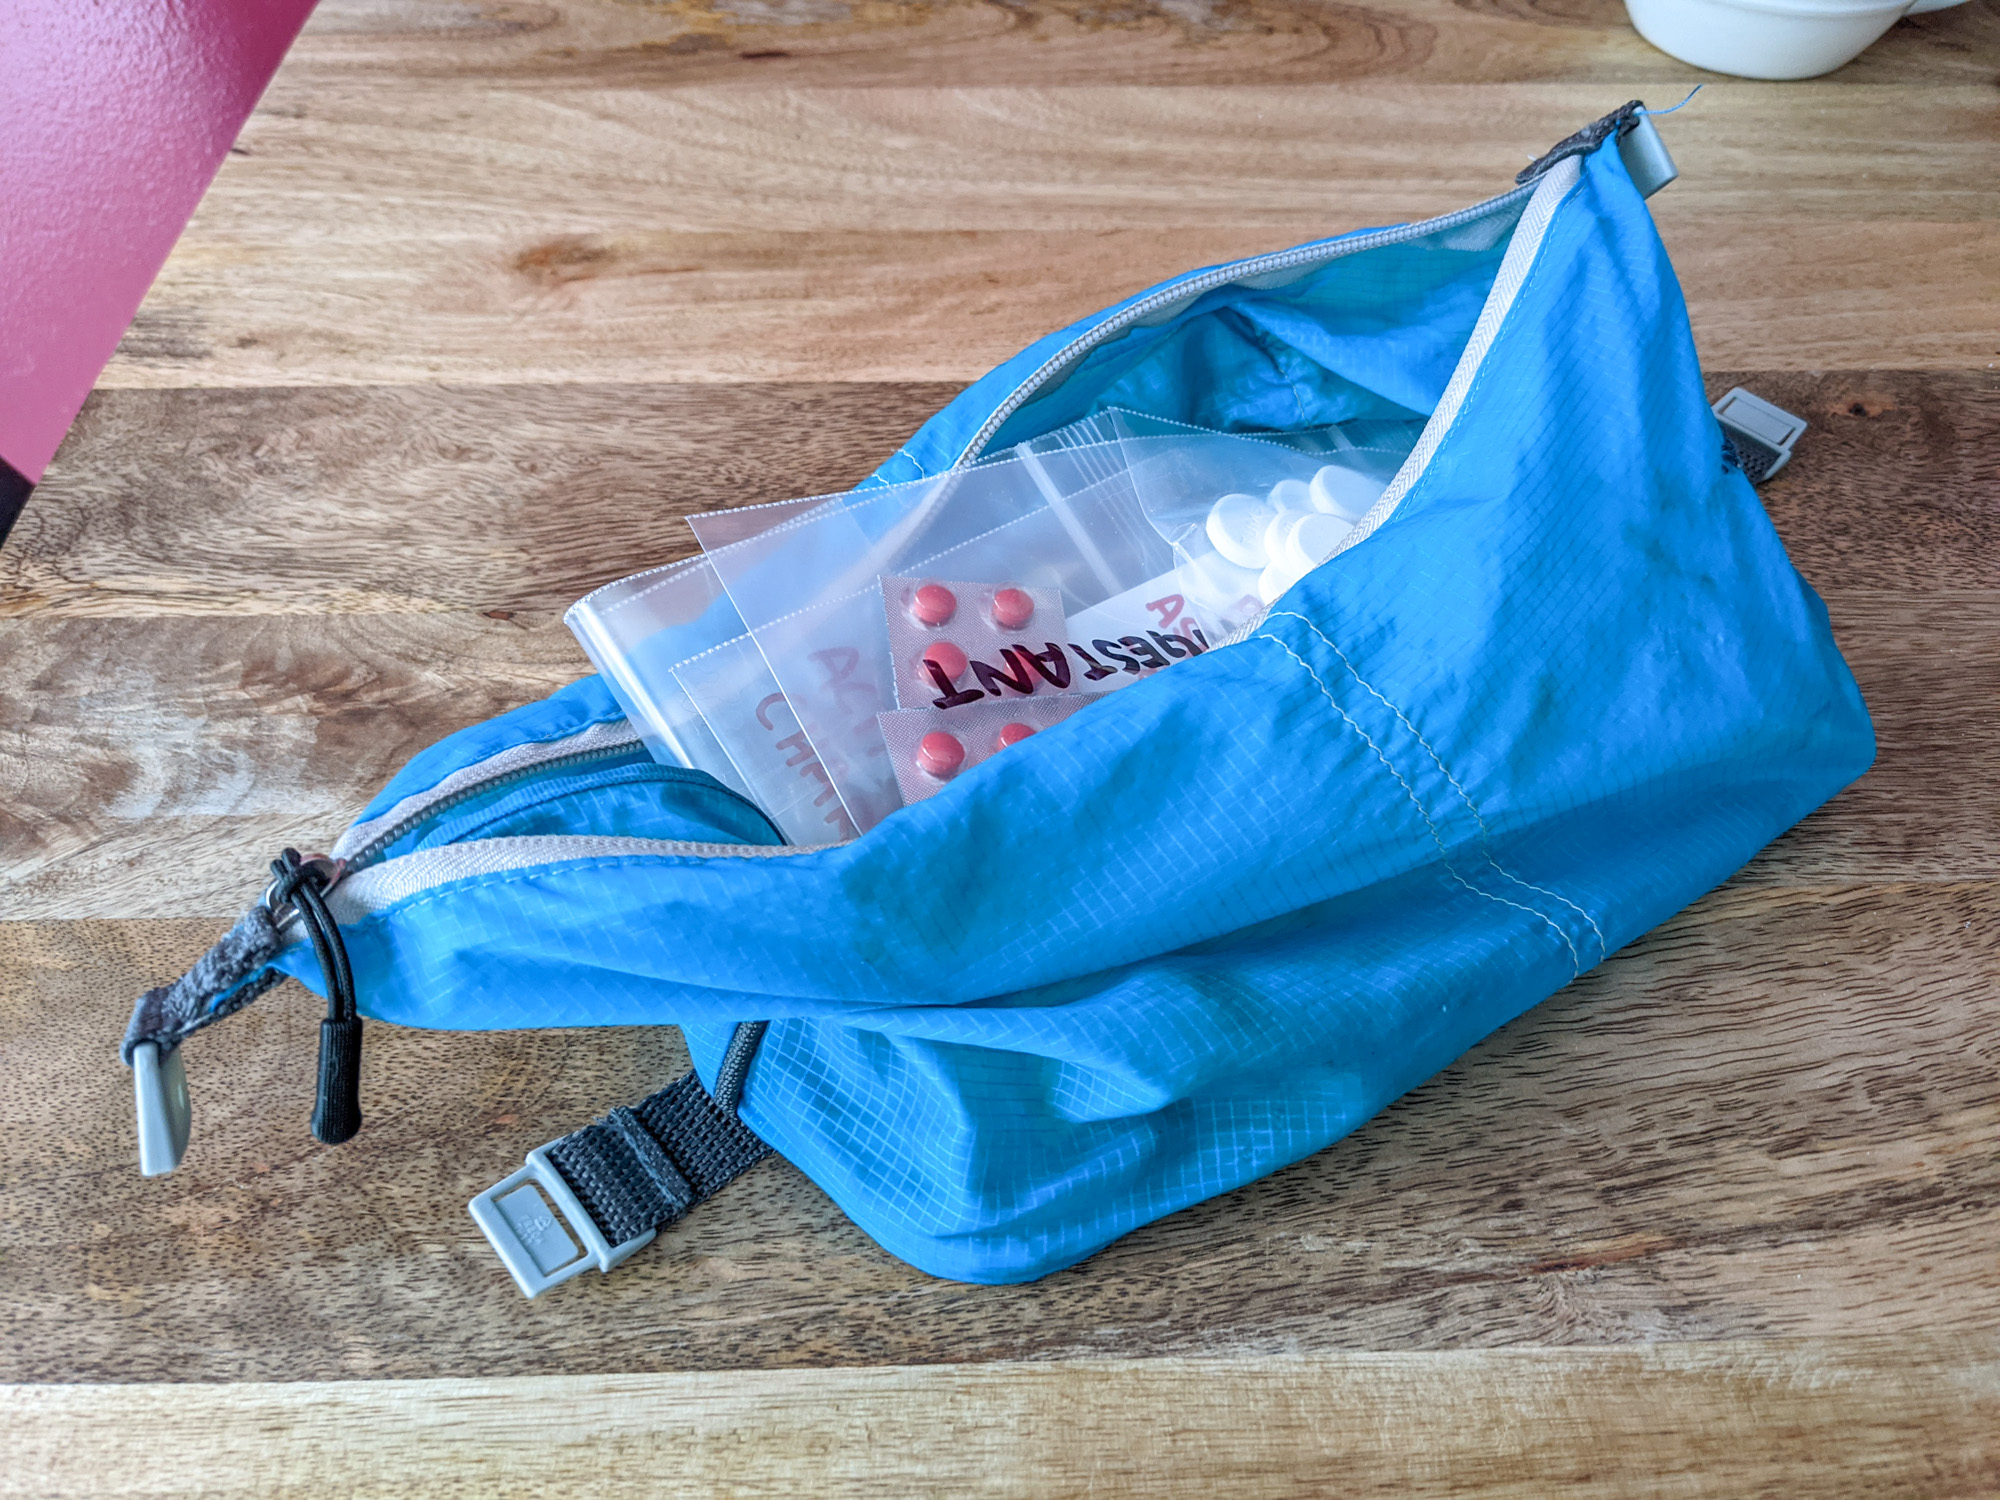 Supplements in a blue bag illustrate how to pack vitamins and supplements for travel.